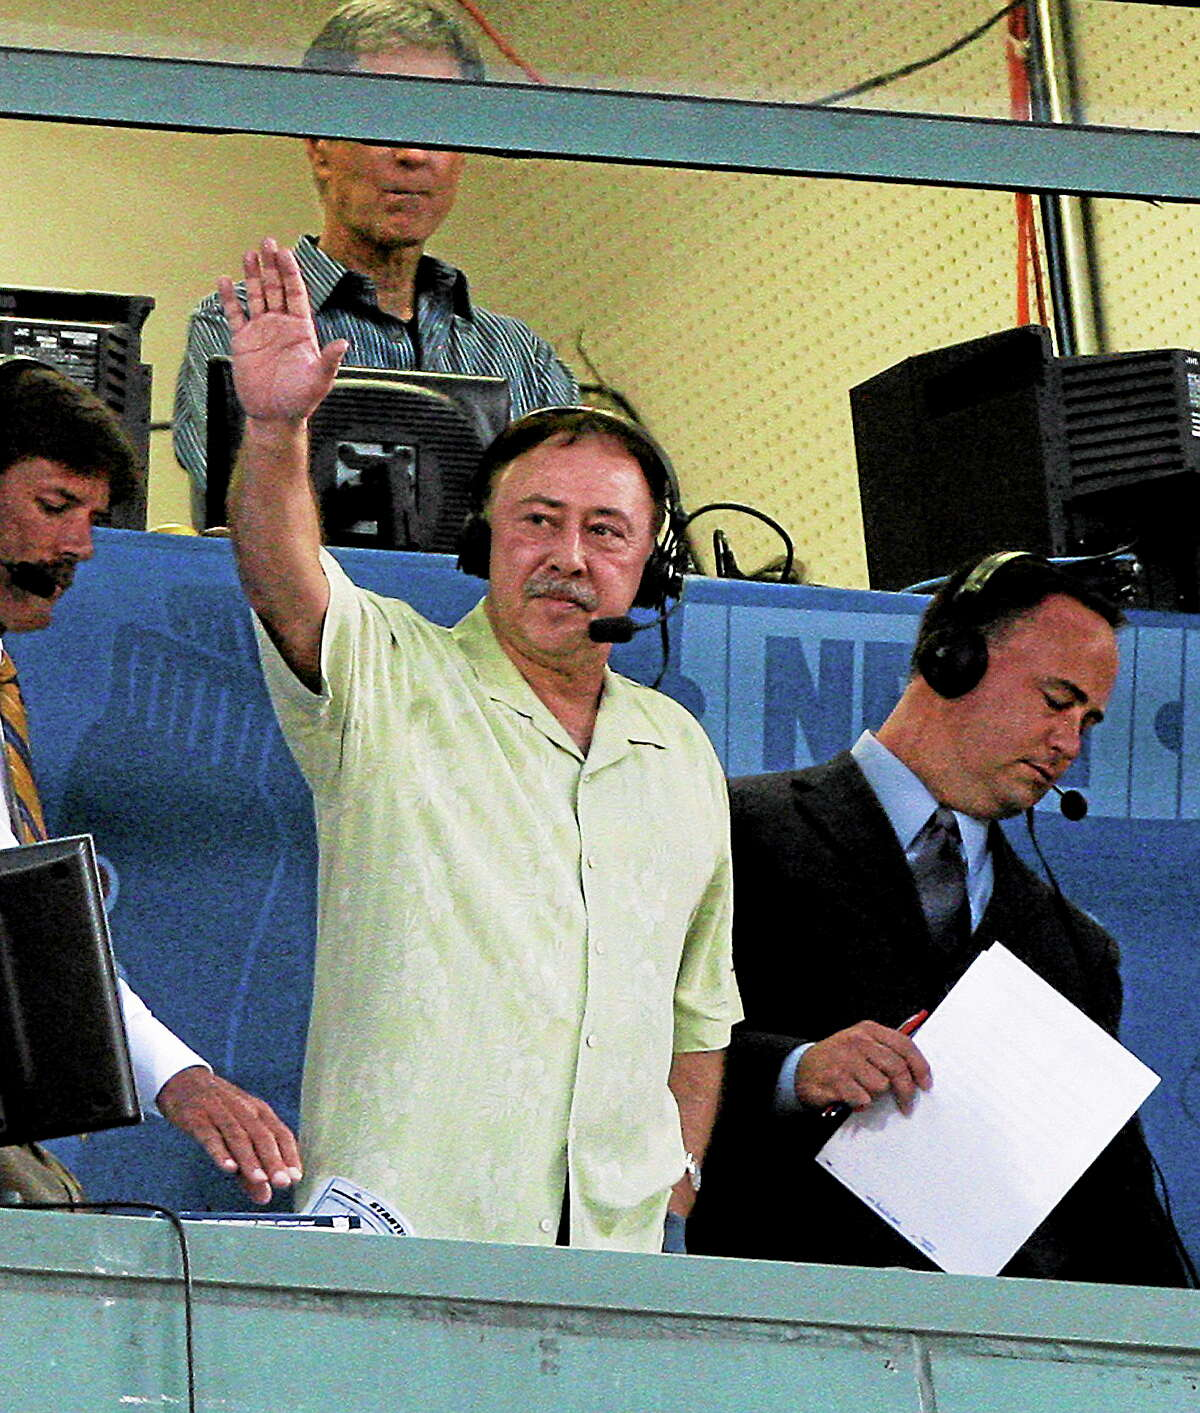 The son of Boston Red Sox announcer Jerry Remy, here waving to the crowd at Fenway Park during a 2009 game, has pleaded not guilty to murder.